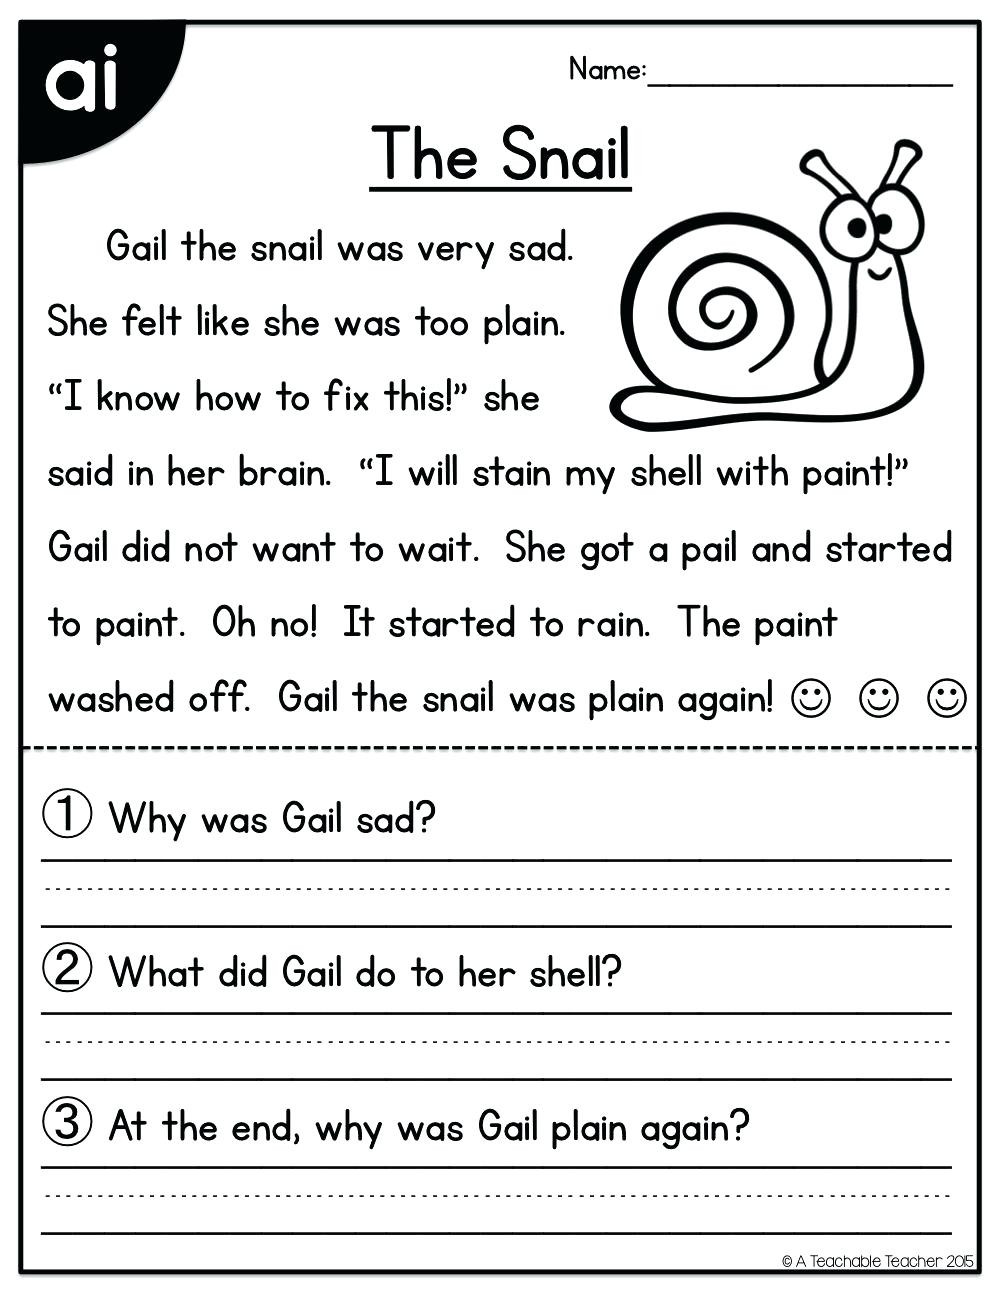 Gifted and Talented Worksheets